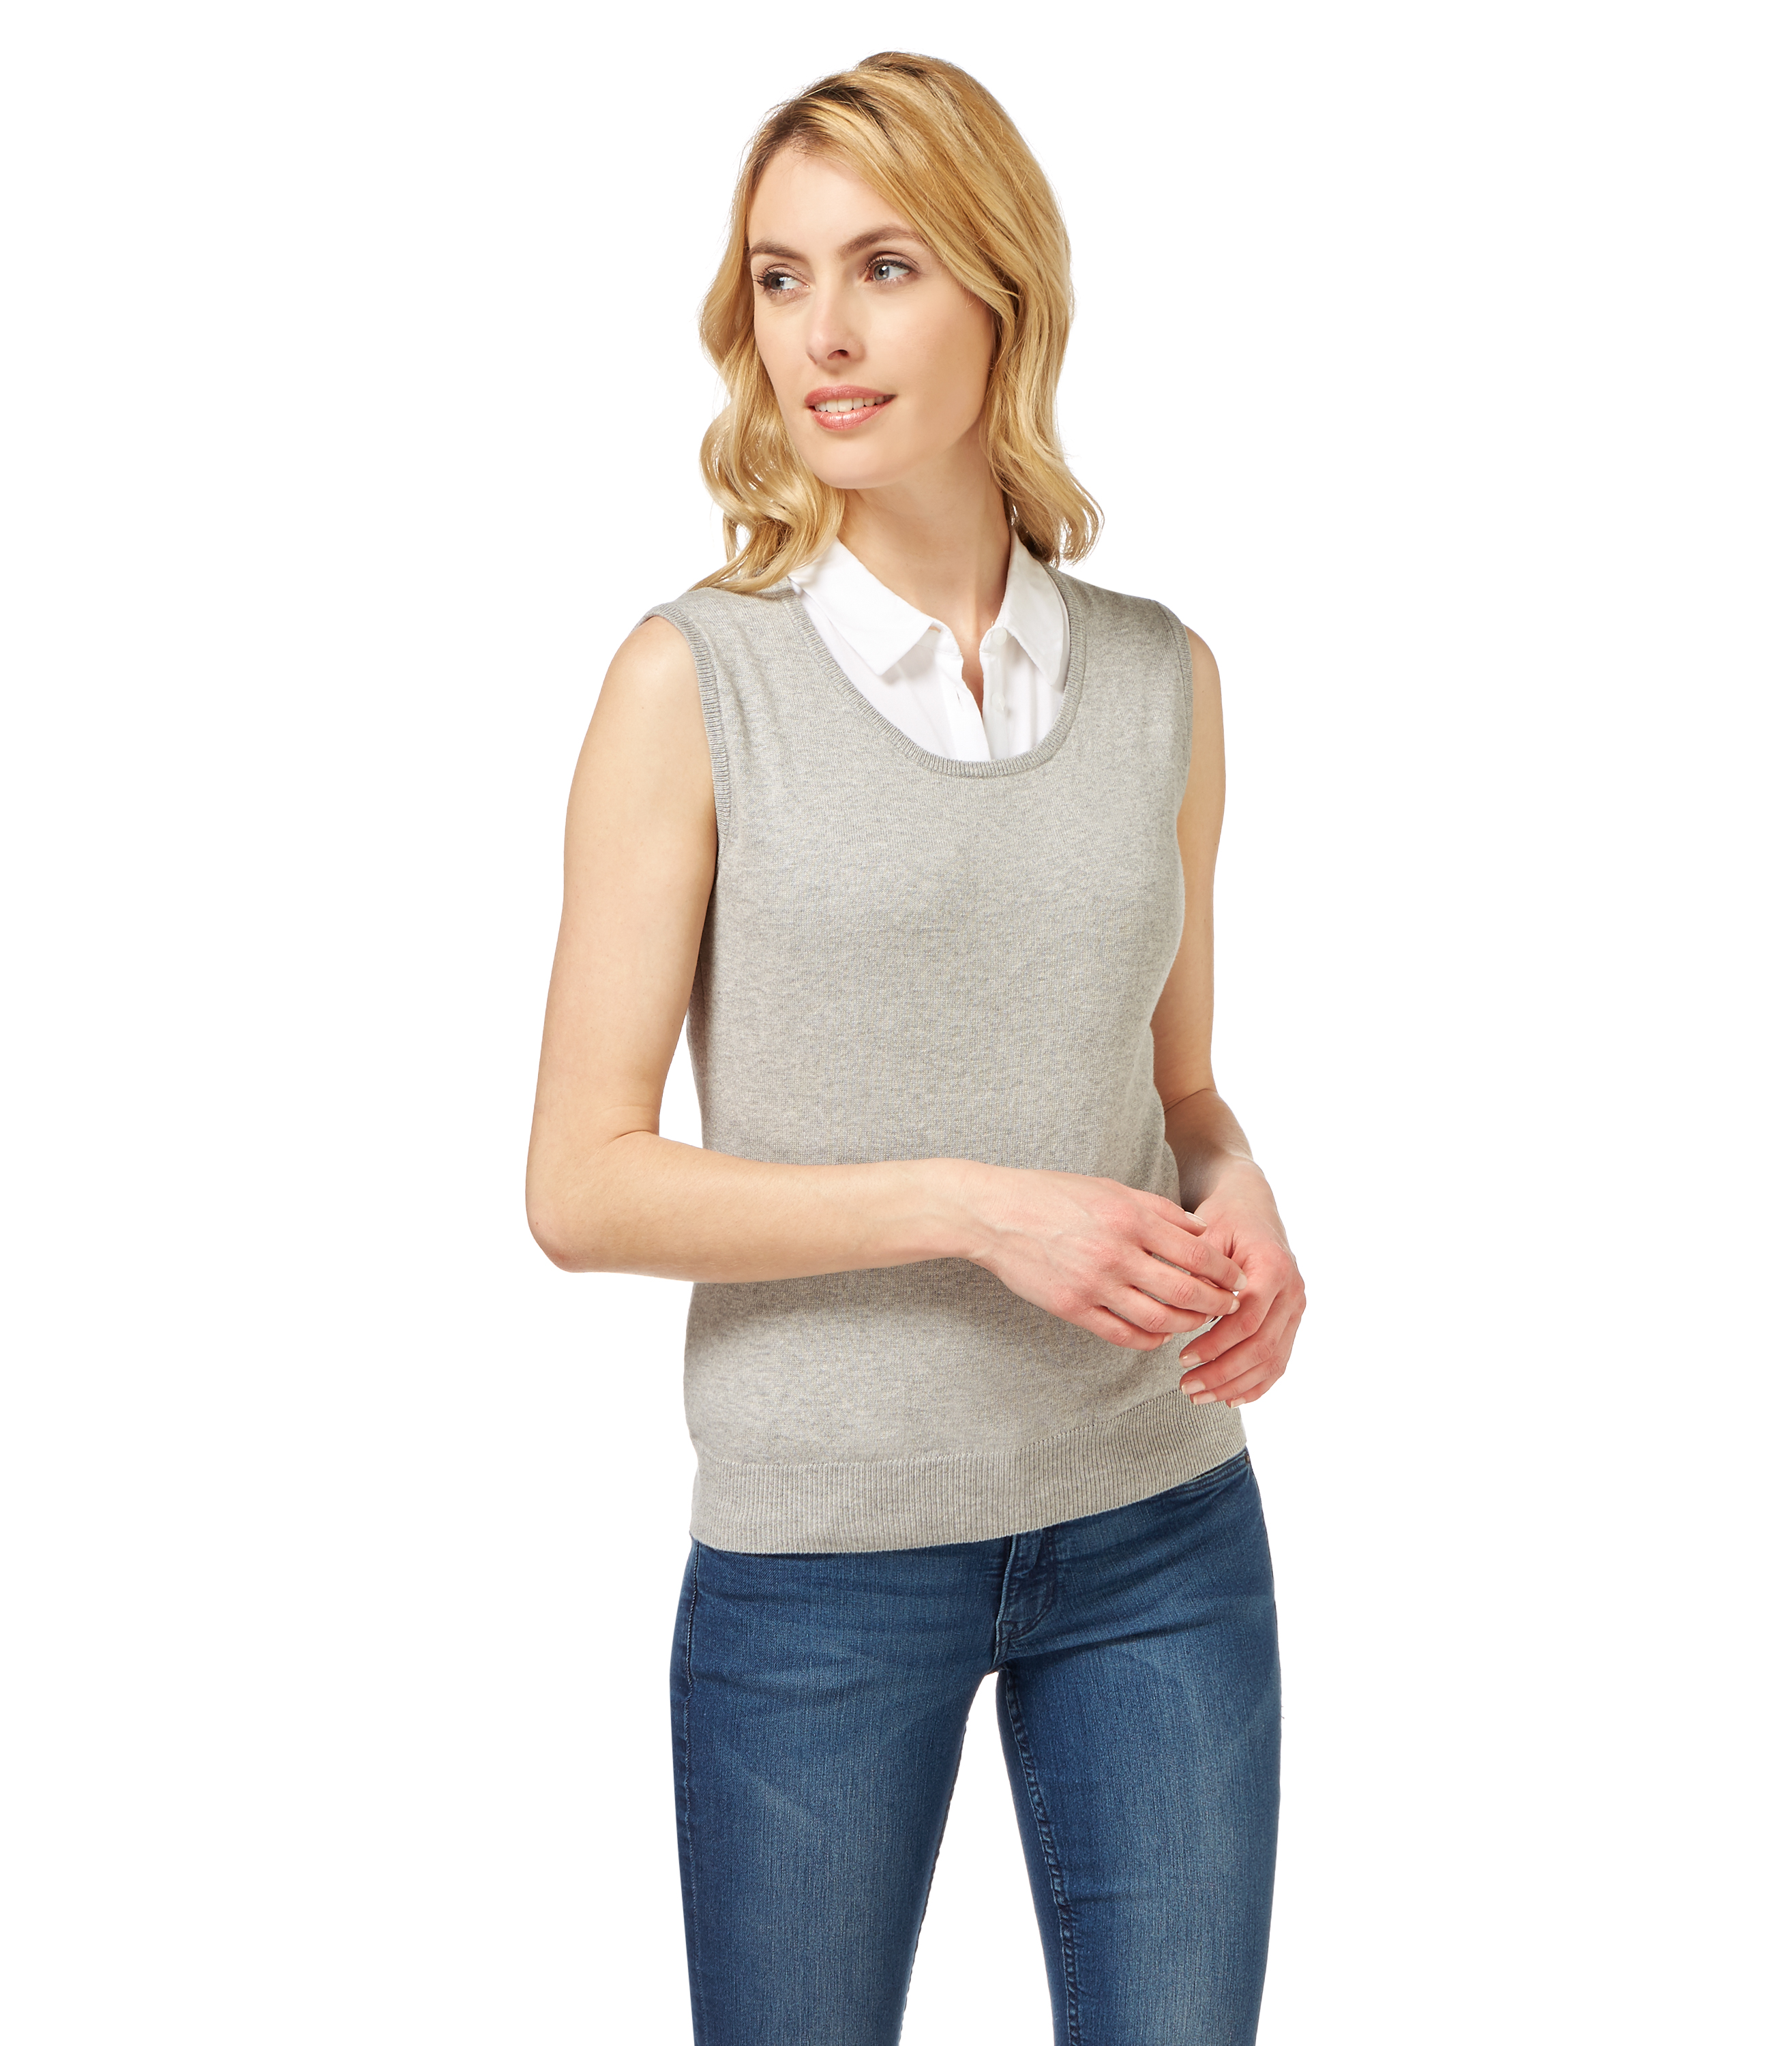 Shop Chadwicks of Boston for our Sleeveless Ribbed Turtleneck. Browse our online catalog for more classic clothing, shoes & accessories to finish your look. Comfortable ribbed knit sweater in a sleeveless style that's perfect for layering. Cotton/nylon; They were comfortable. I got tall size because they were out of my size in women's.